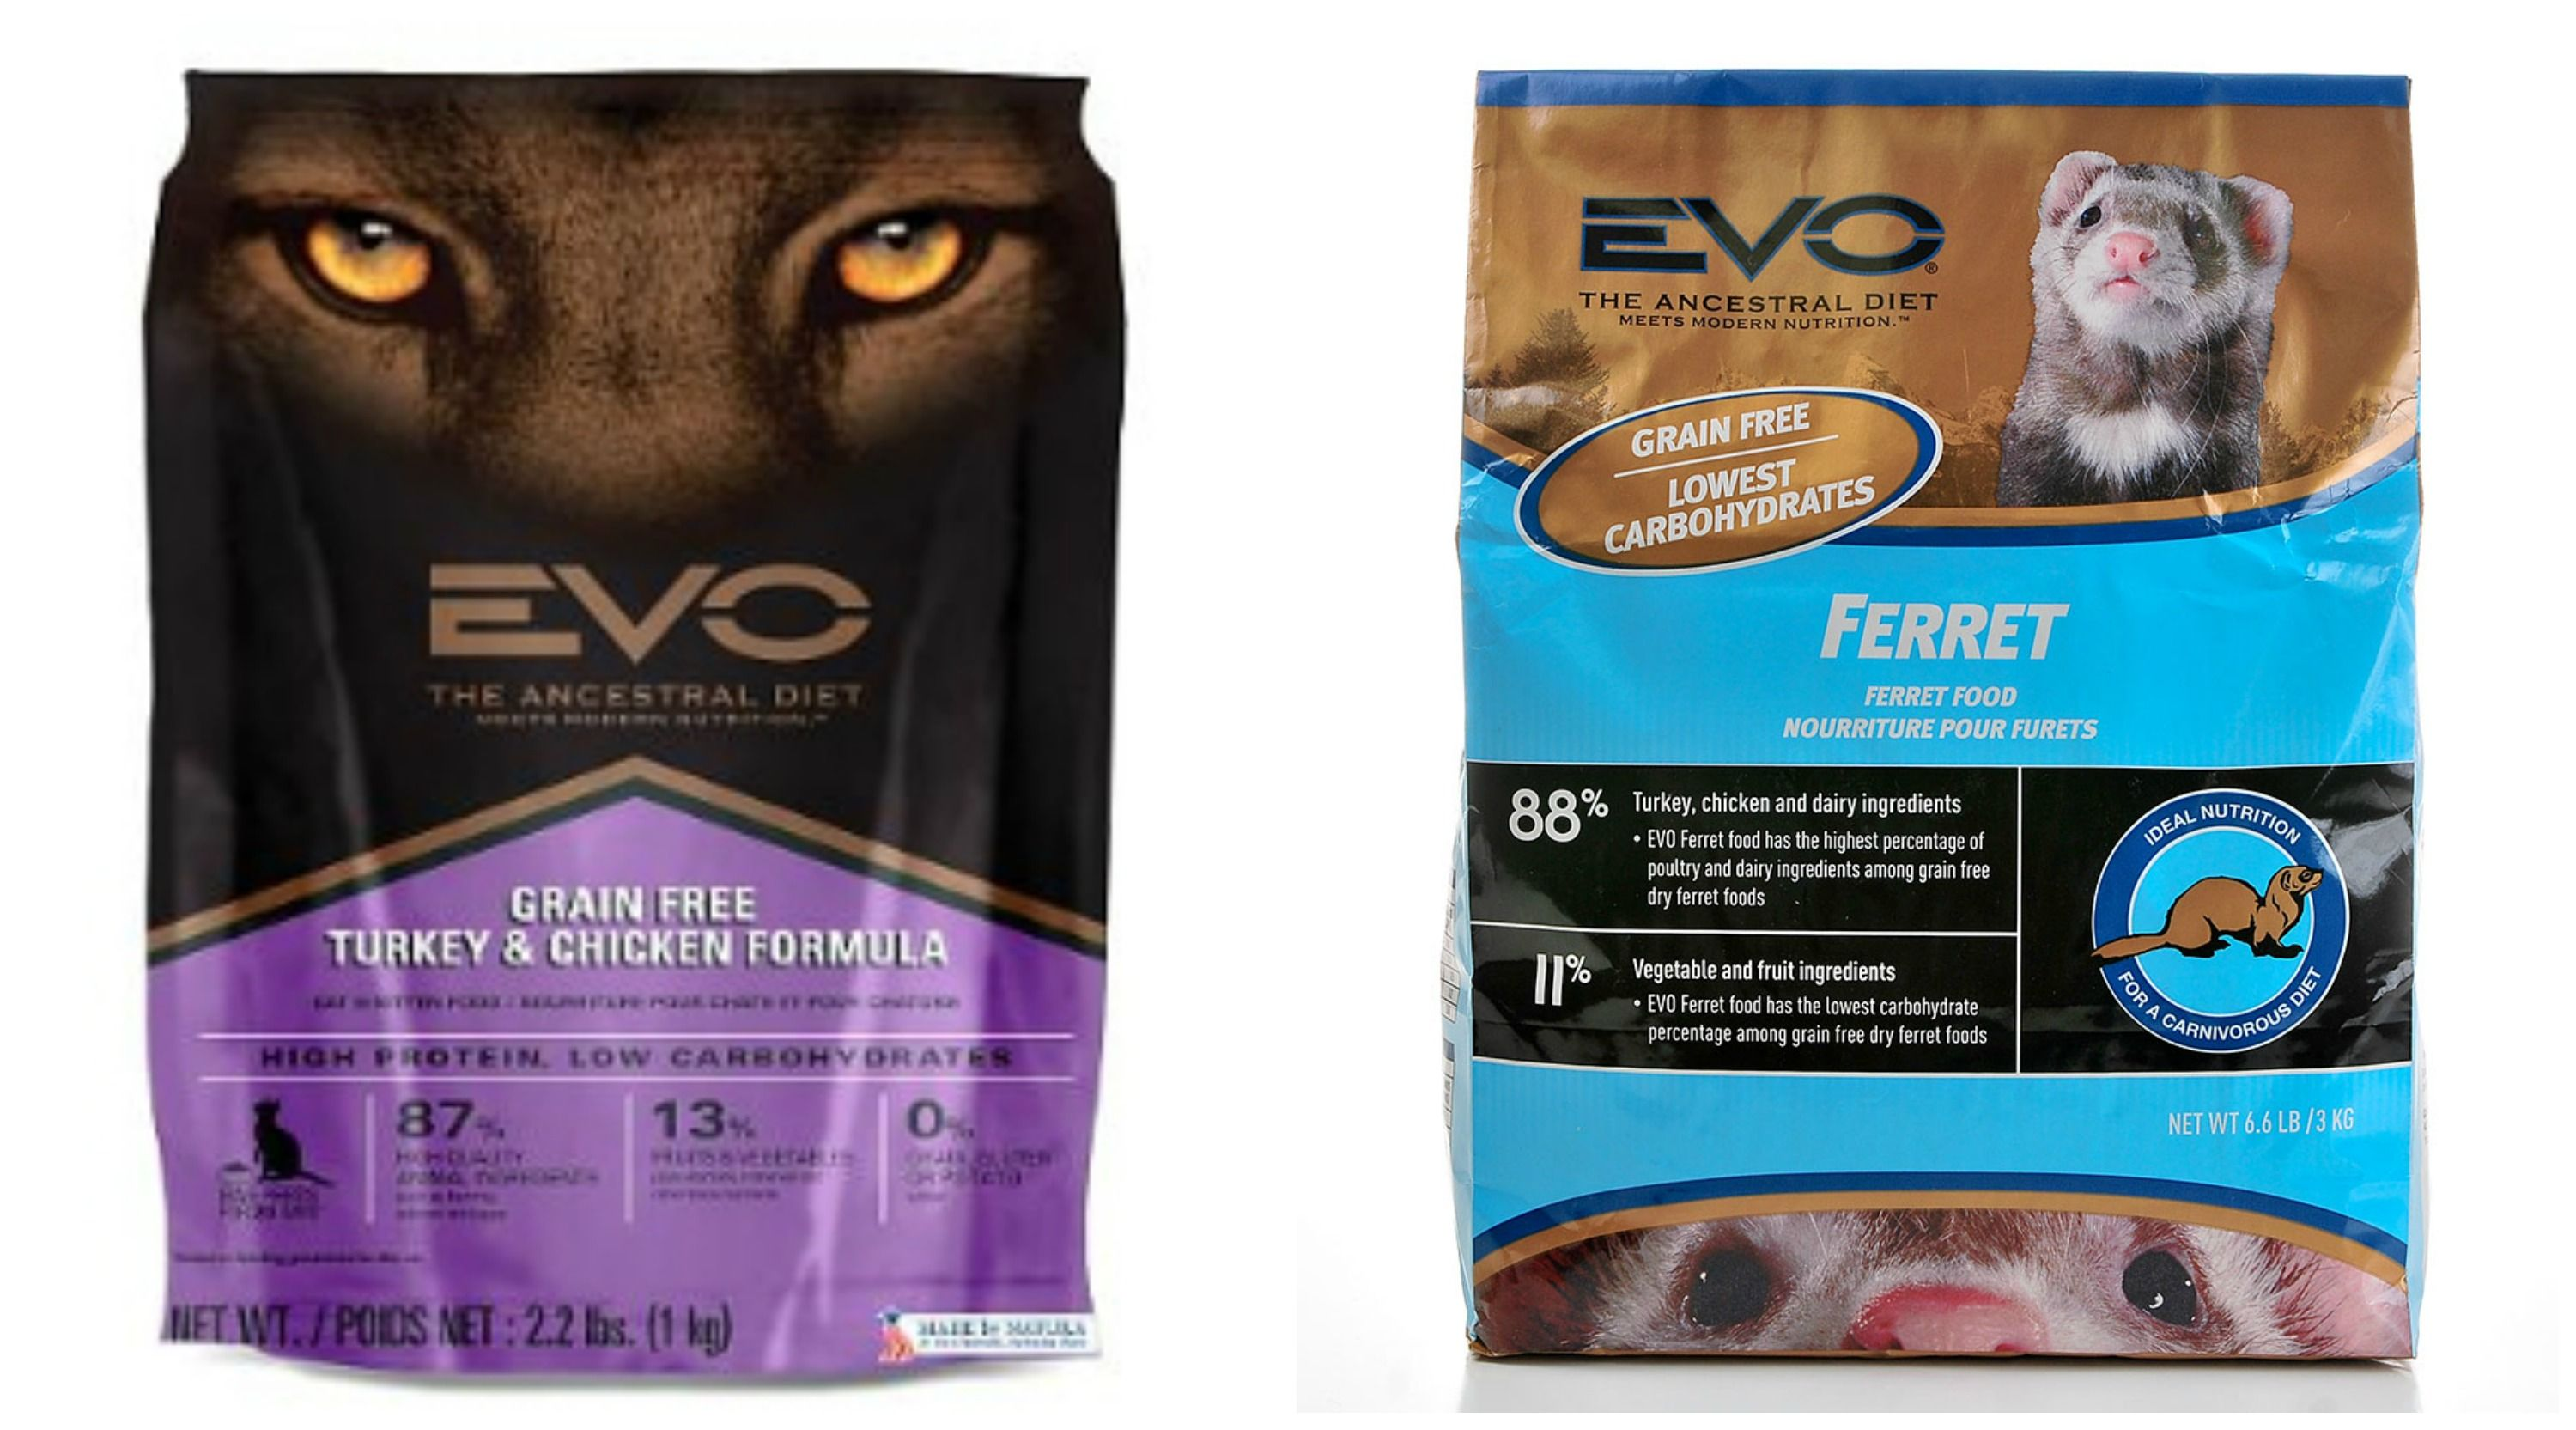 Natura Issues A Recalls Of Some Evo Dry Cat And Ferret Foods Https Alissawolf Wordpress Com 2014 11 24 Natura Issues Recall O Food Turkey Chicken Grain Free